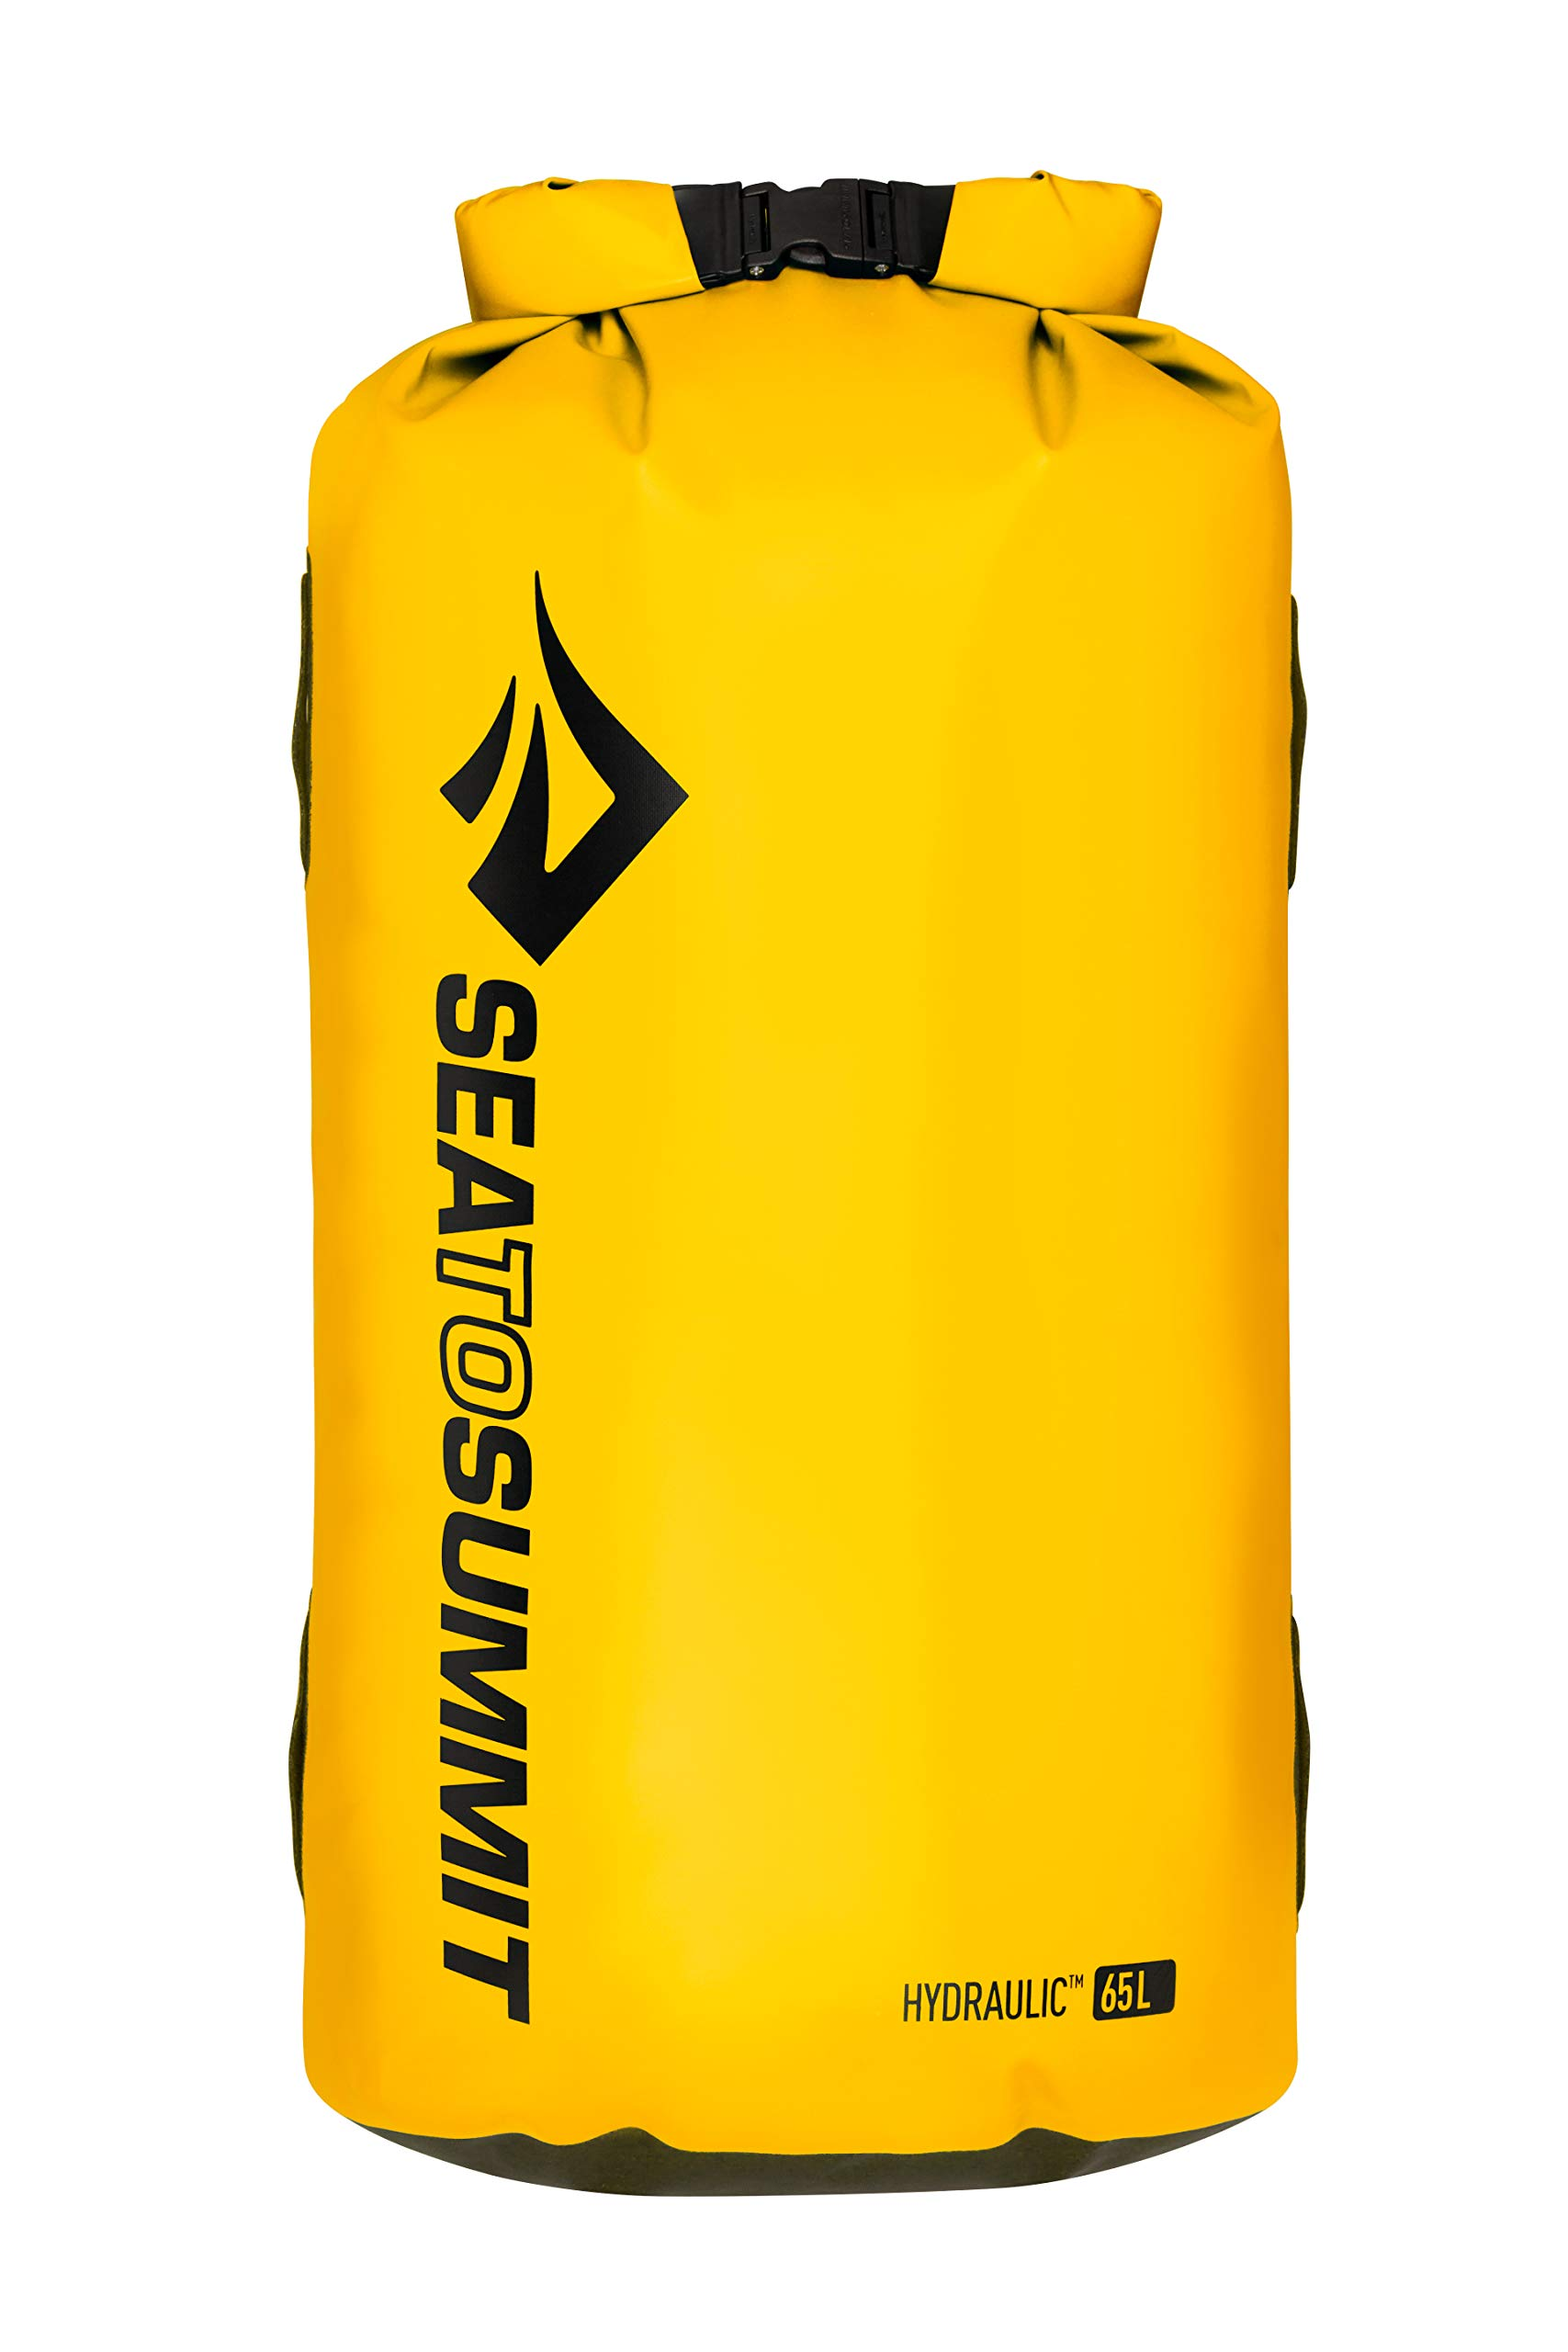 Sea to Summit Hydraulic Dry Bag, Yellow, 65 Liter by Sea to Summit